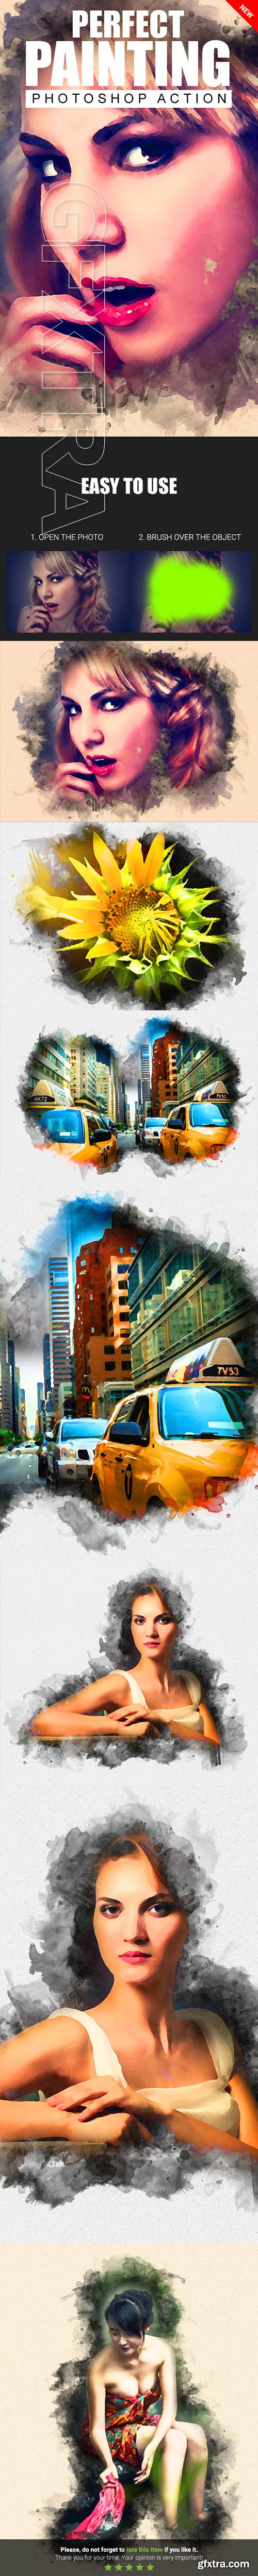 GraphicRiver - Perfect Painting Photoshop Action 21912363